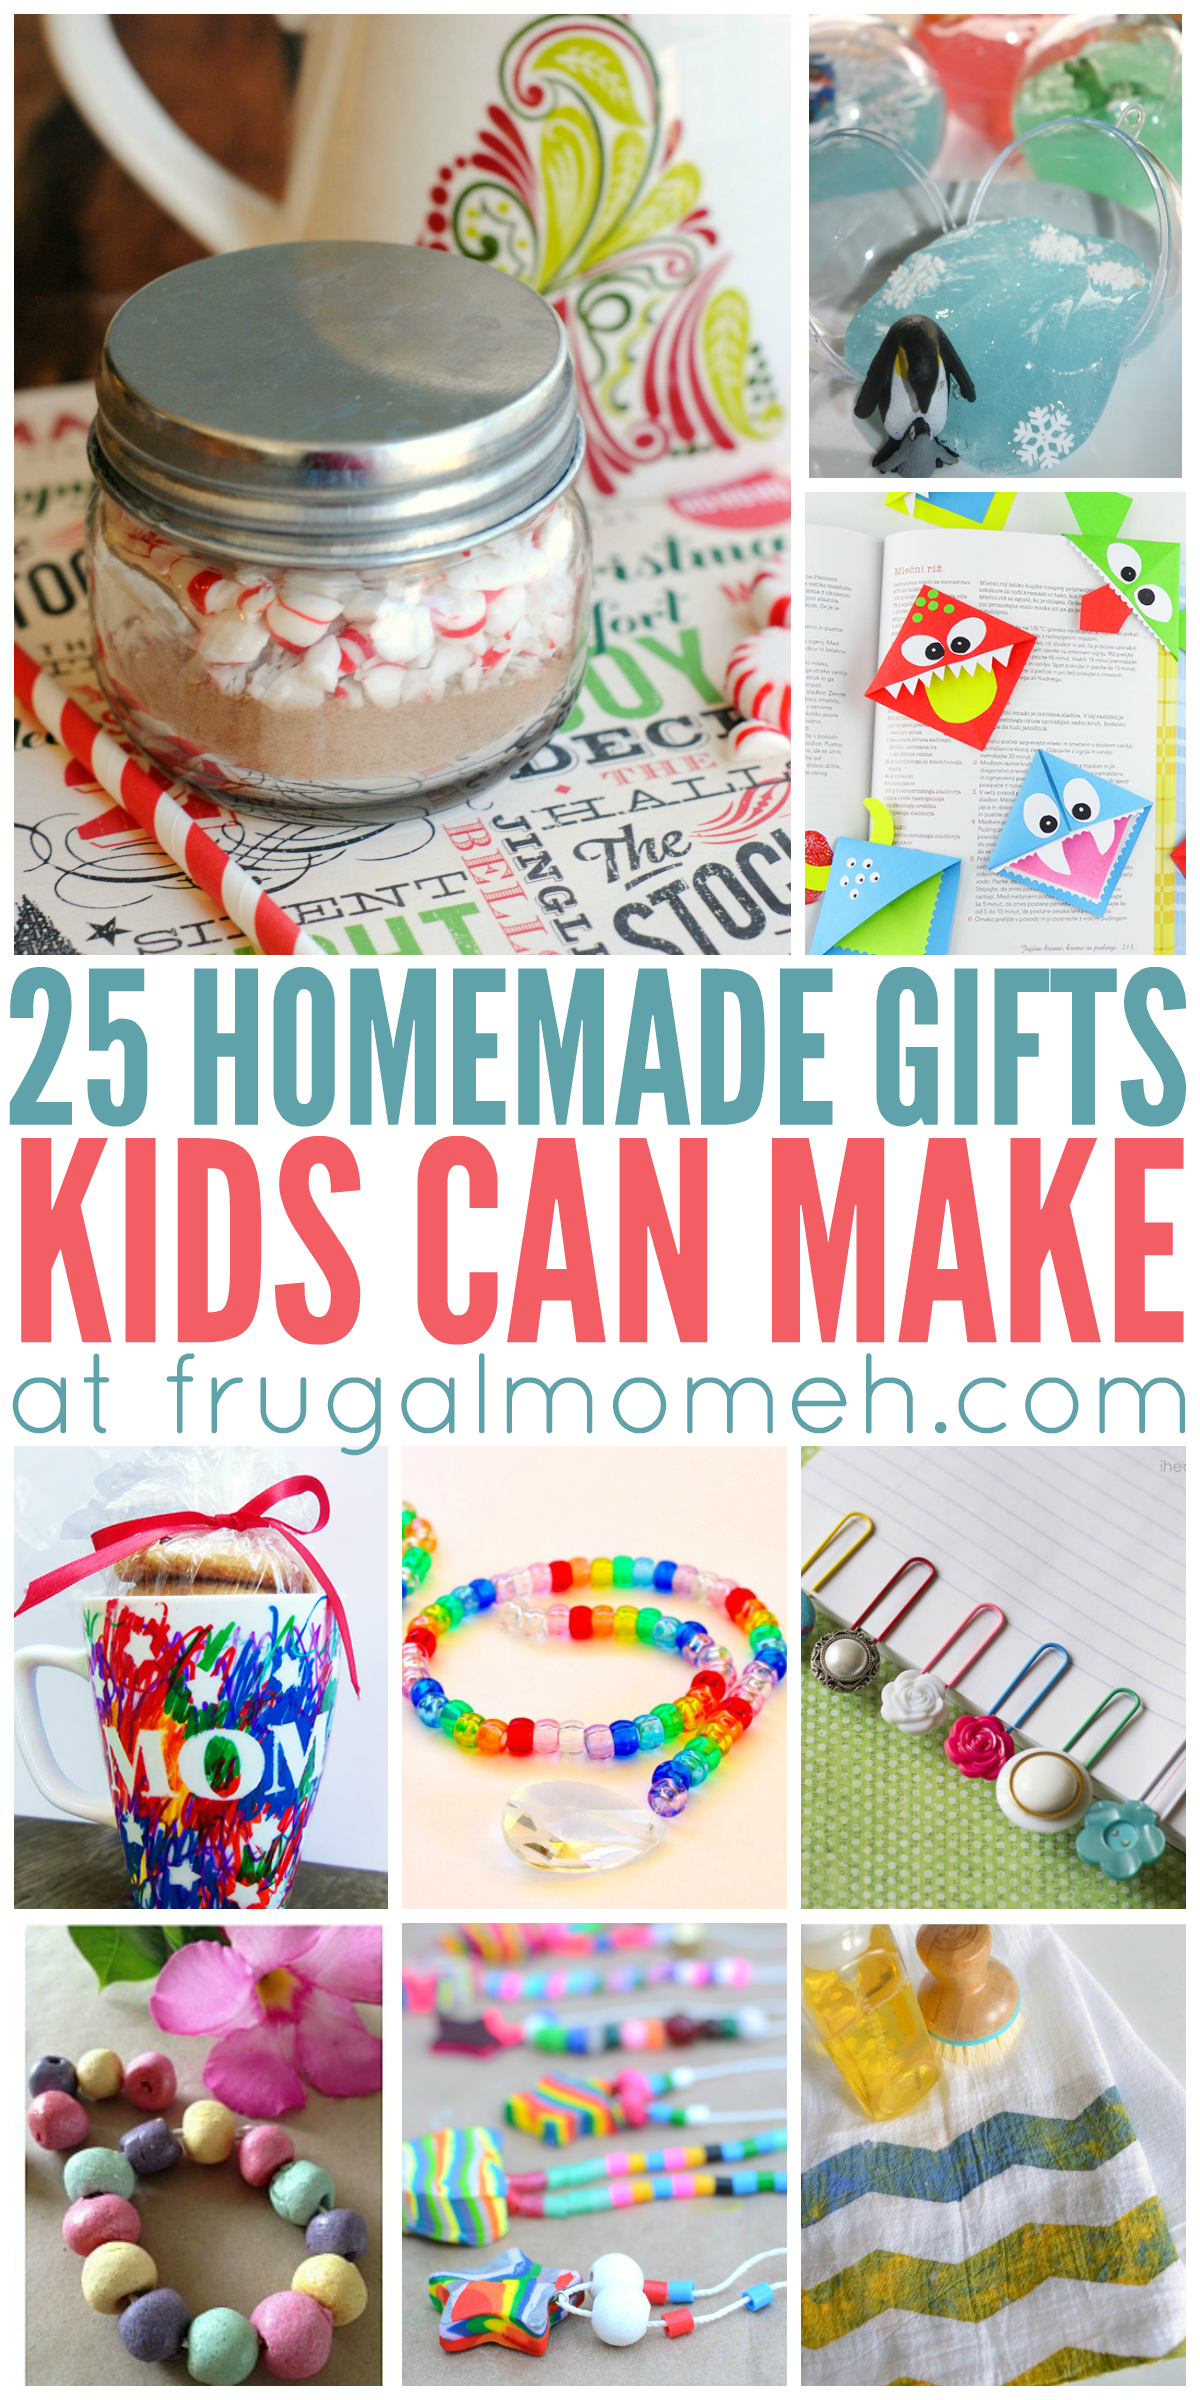 Homemade Gifts That Kids Can Make Homemade kids gifts